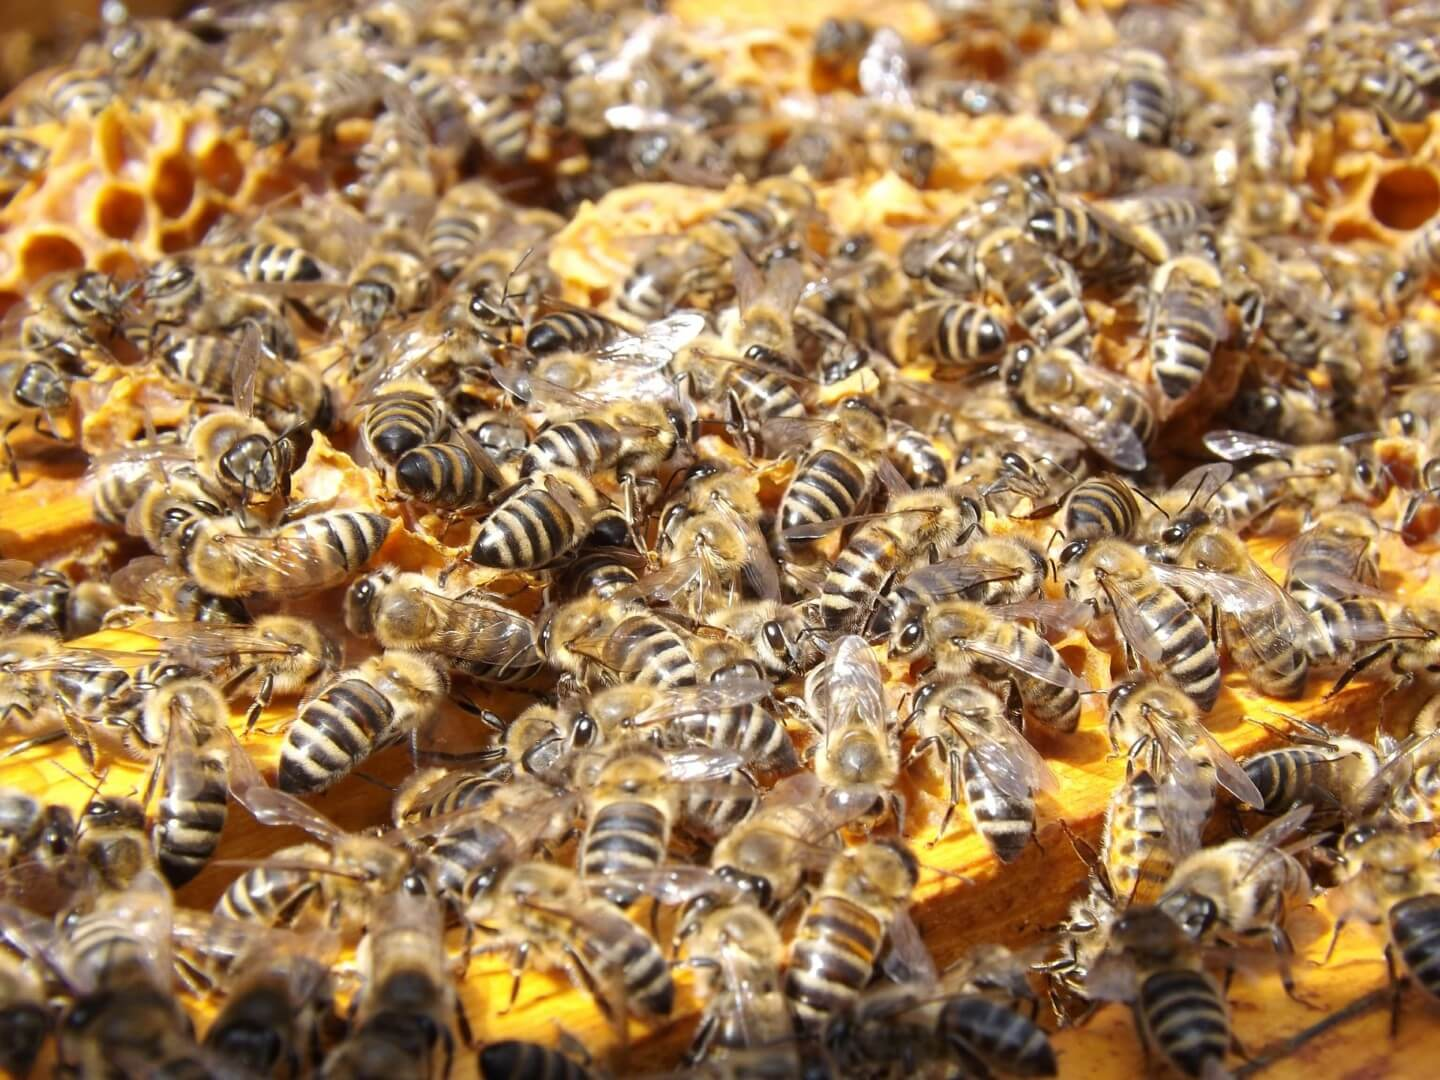 Bees slowly poisoned by pesticides, say scientists 9